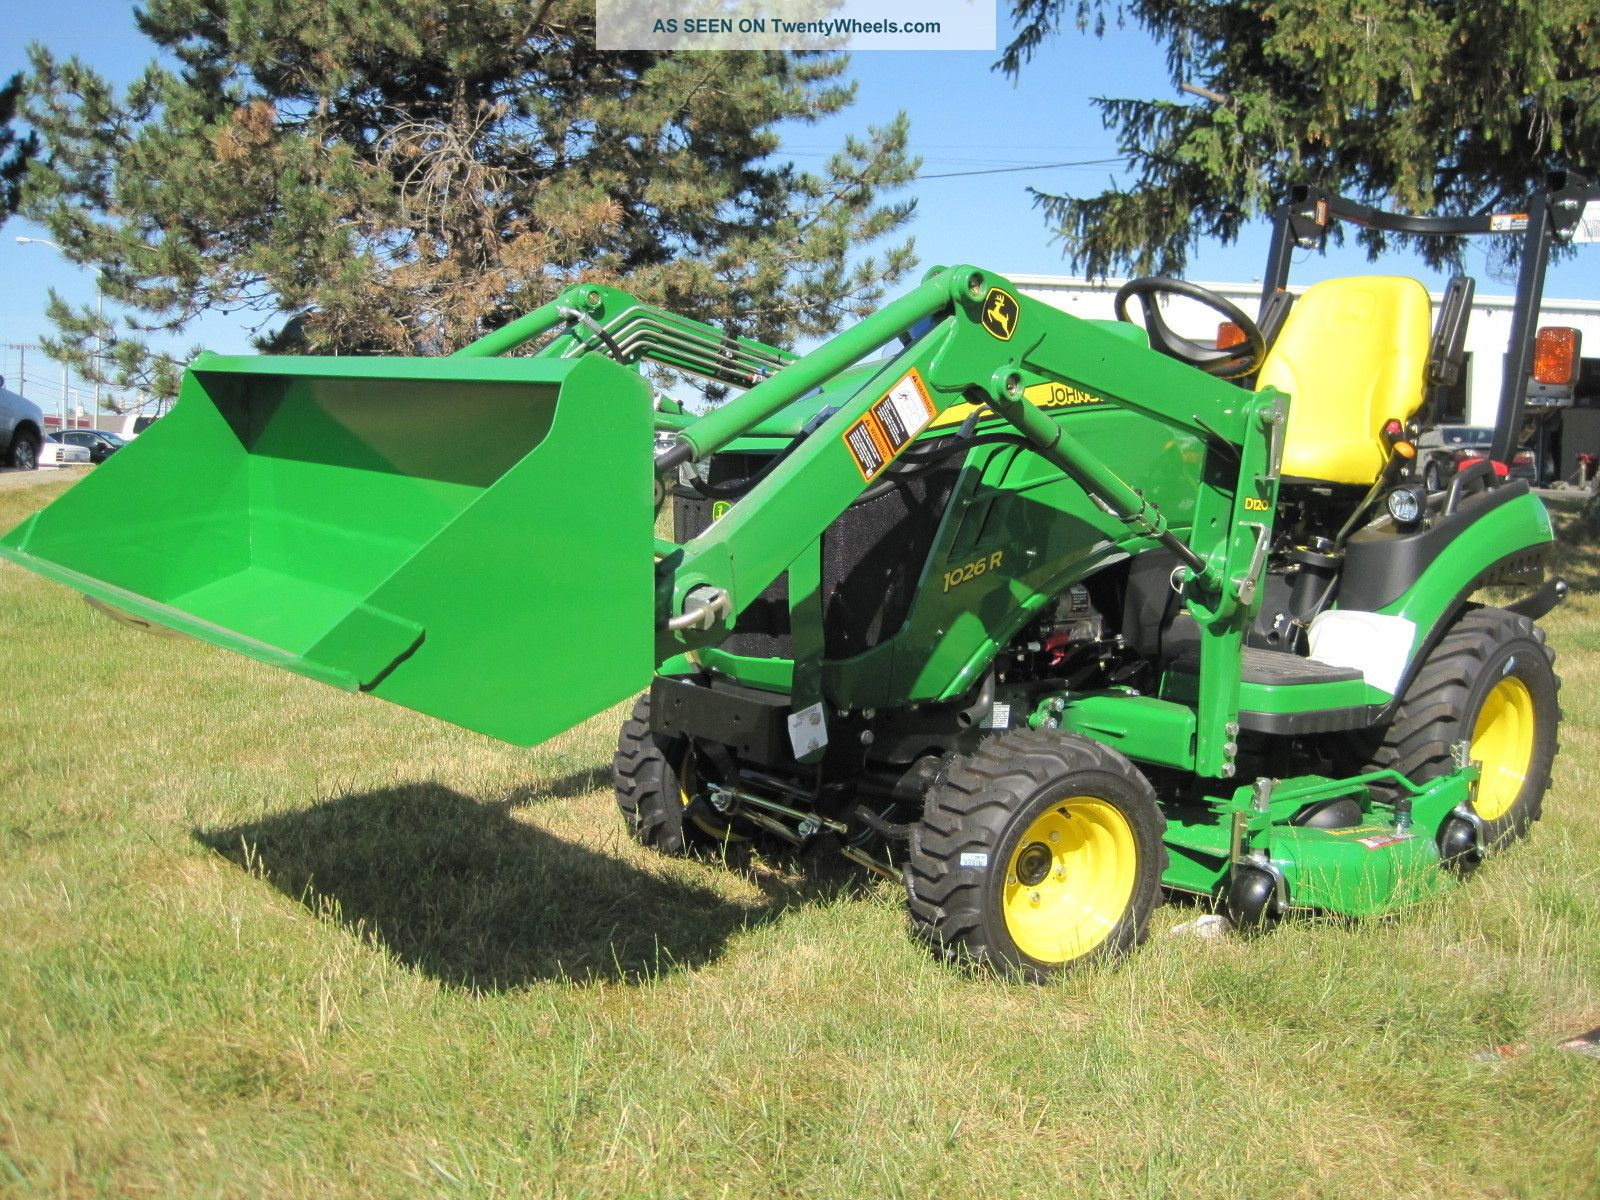 New John Deere 1 Series 1026r Sub - Compact Tractor With ...